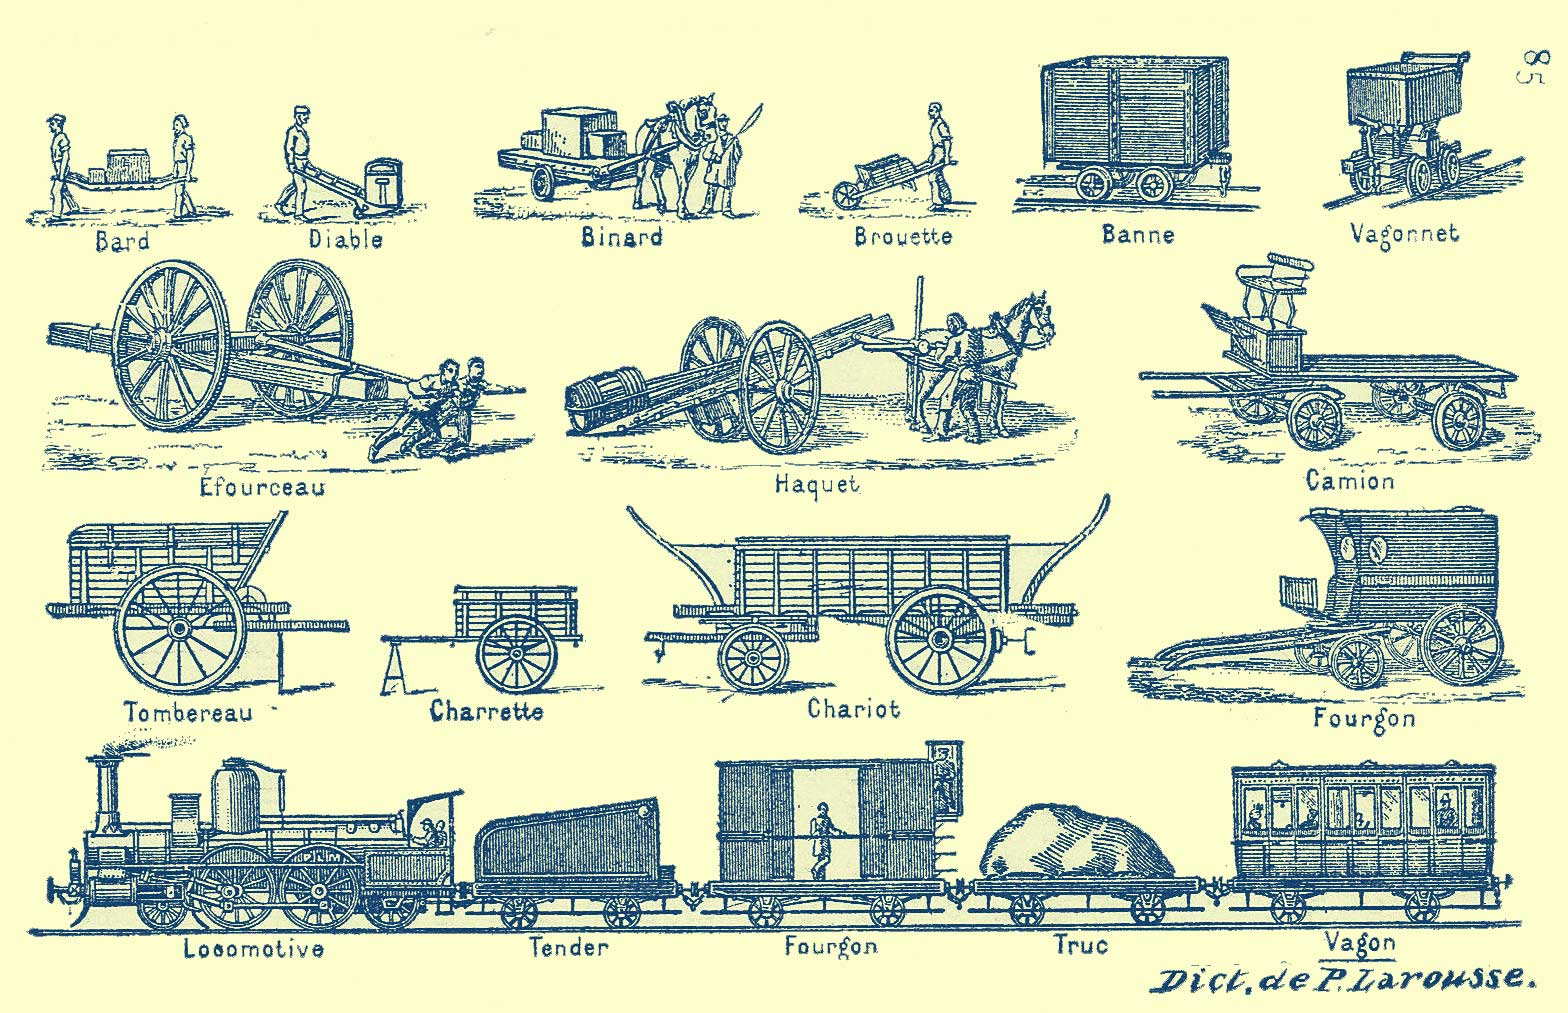 picture of different types of vehicles of the 19th century in France and names in French: bard, diable, binard, brouette (wheelbarrow), banne, vagonnet (freight-car), efourceau, haquet, camion (truck), tombereau (rubbish-cart), charrette (cart), chariot (wagon), fourgon (van), locomotive, tender [train car], fourgon [train car], truc [train car], vagon [train car]